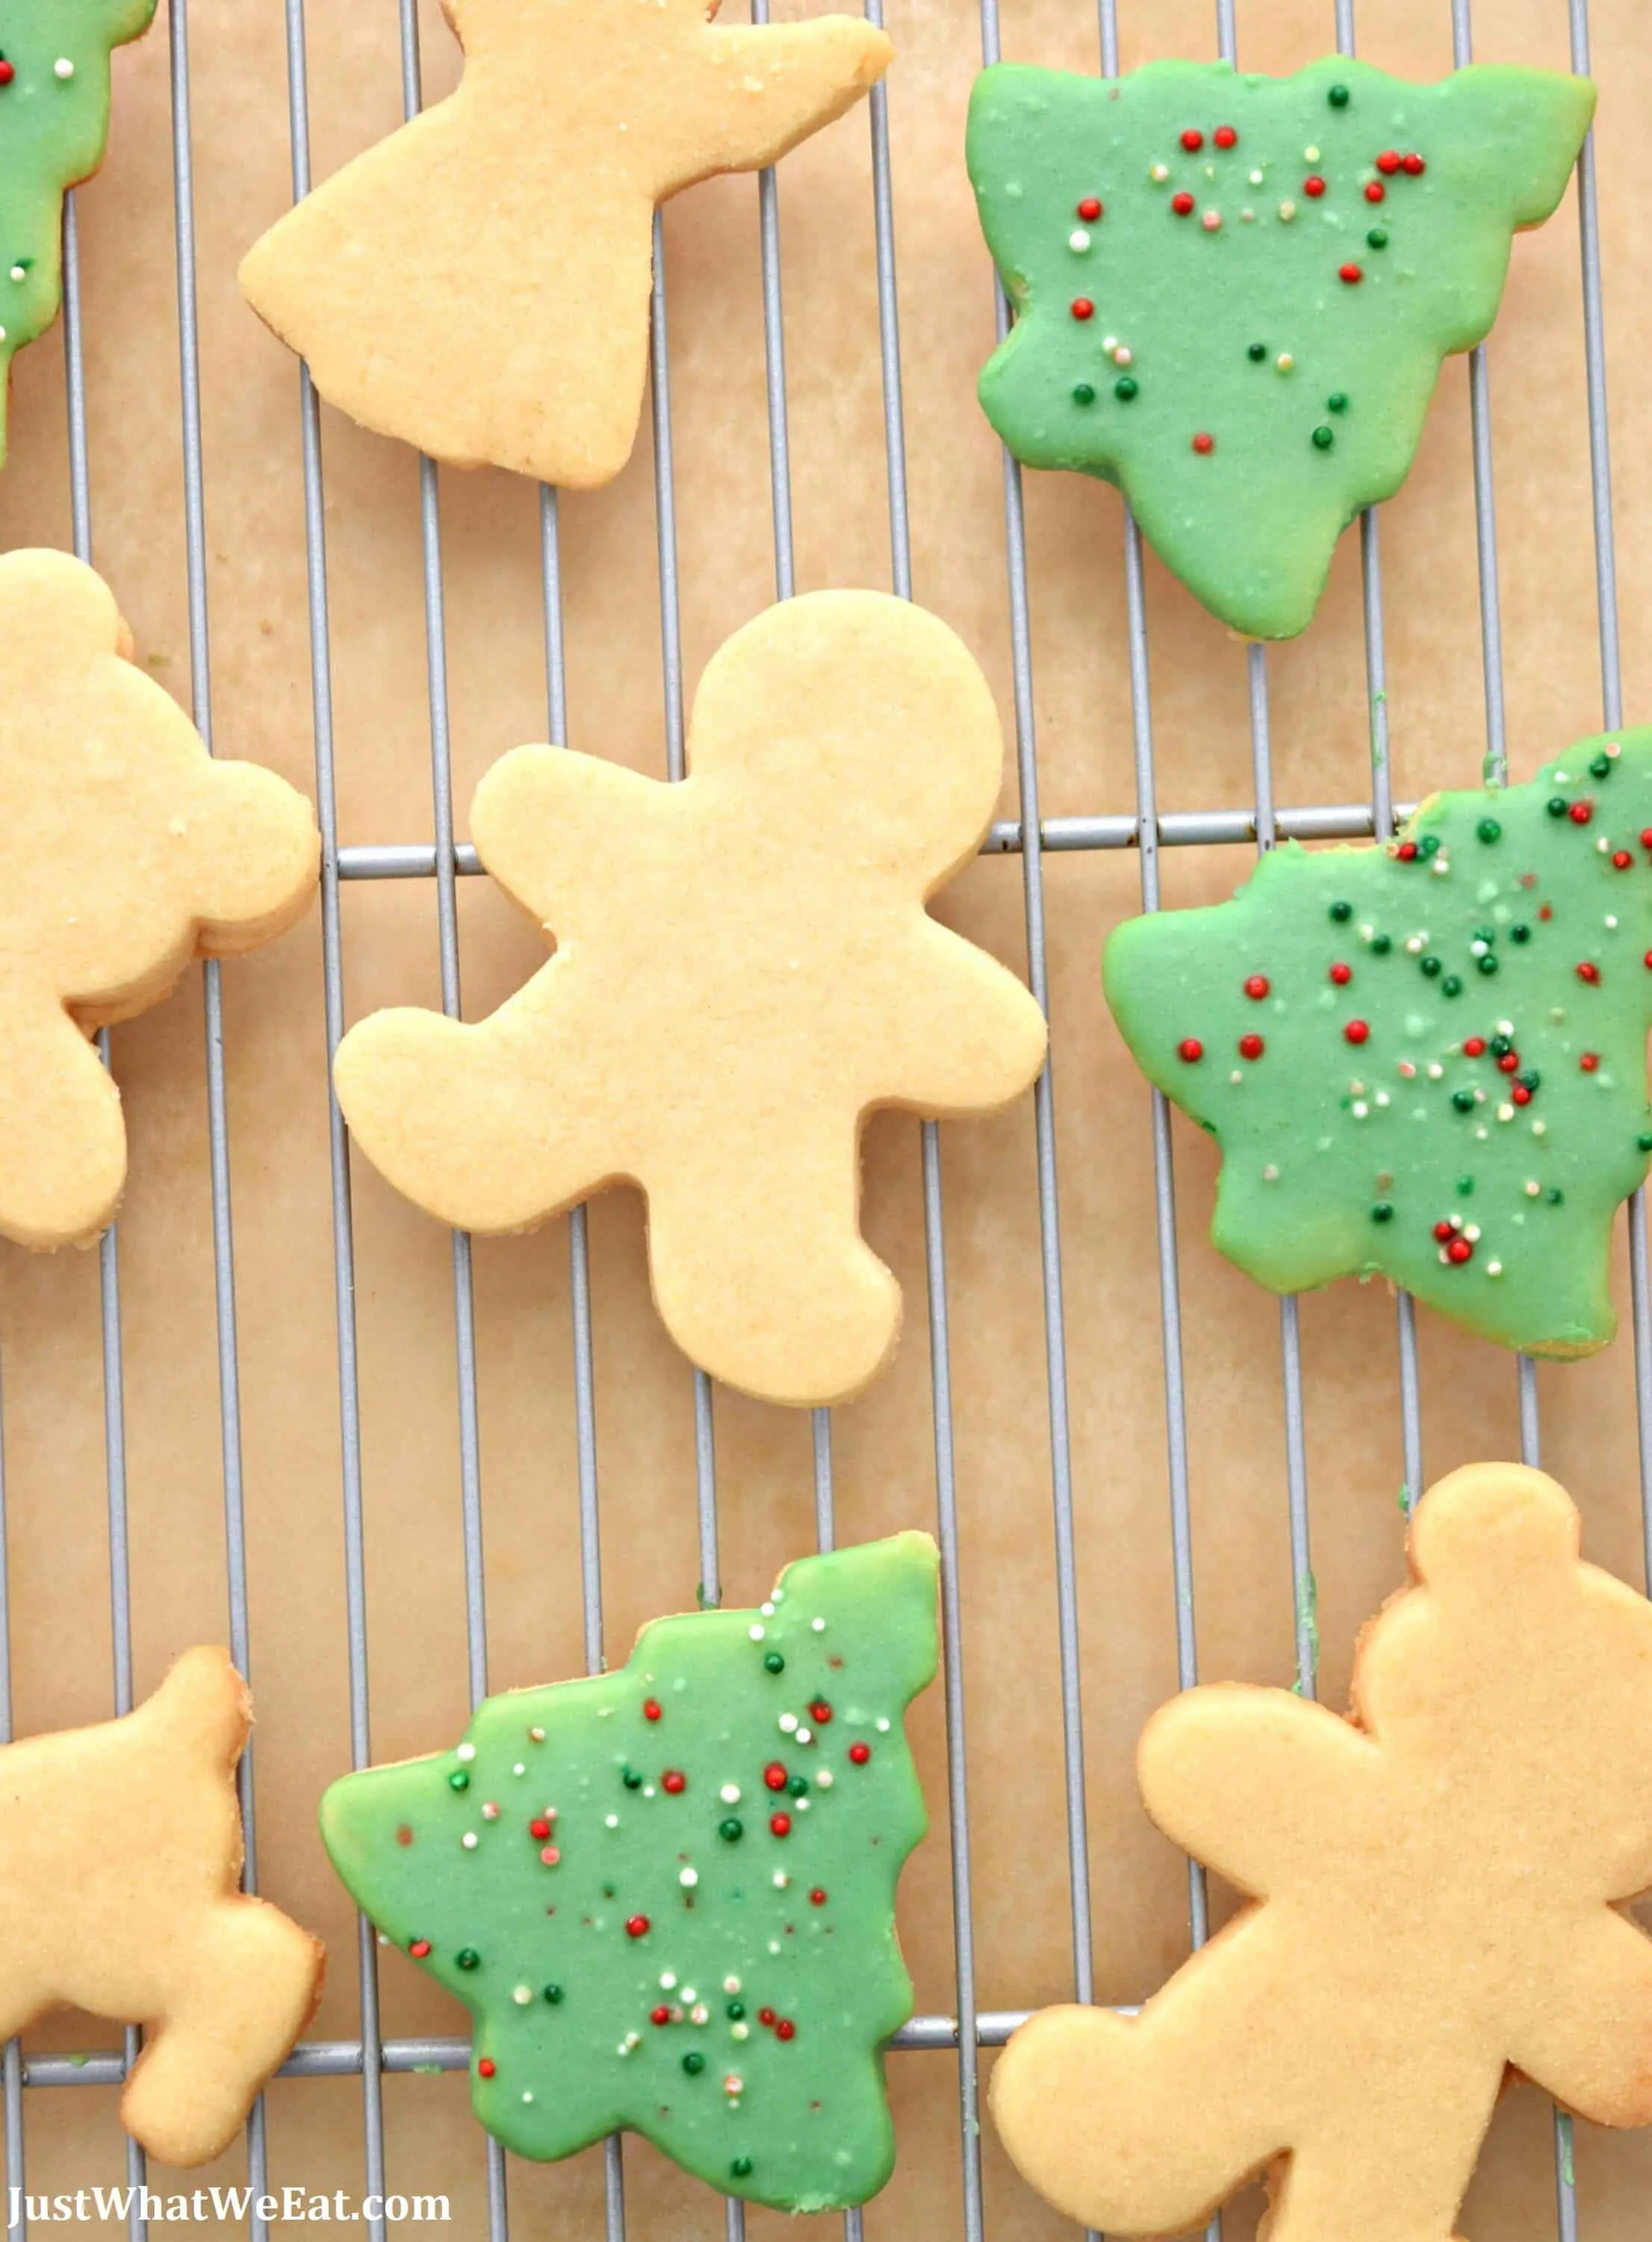 Cut Out Cookies Gluten Free And Vegan